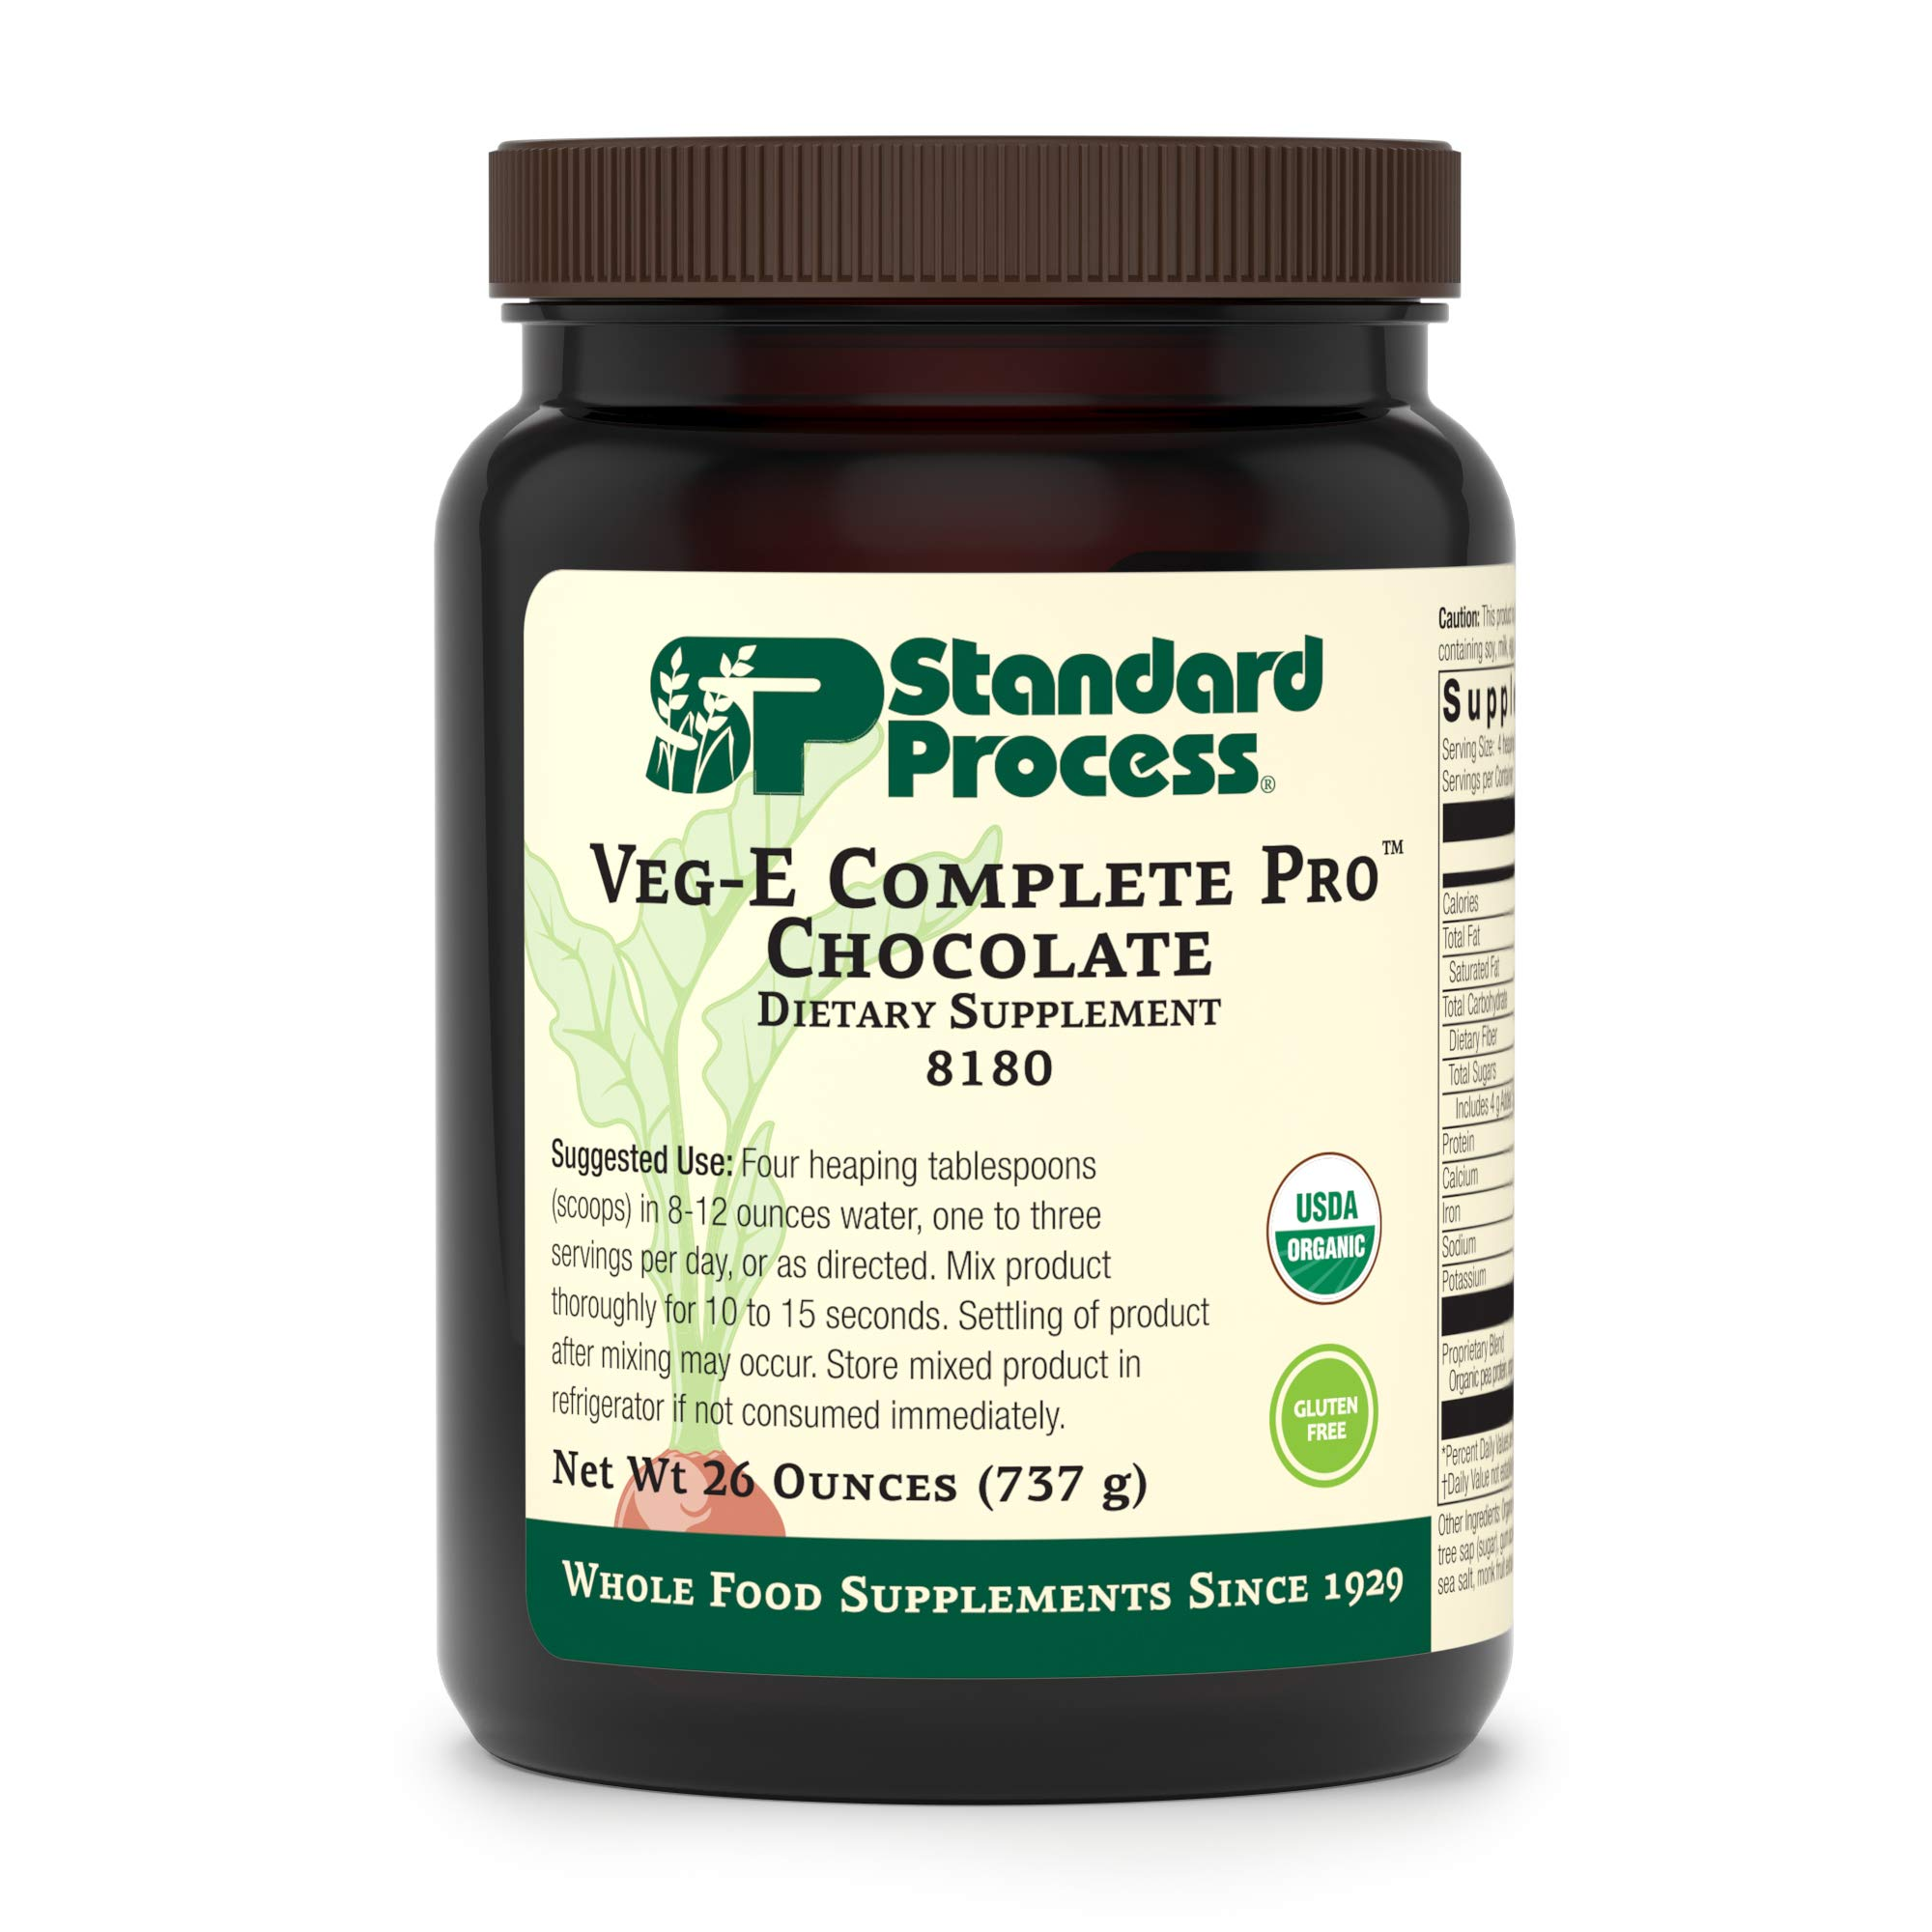 Standard Process - Veg-E Complete Pro Chocolate - Organic Plant-Based Protein Blend, 15 g Protein, Calcium, Iron, Potassium, Essential Amino Acids, Vegan, Gluten Free, Non-GMO - 26 oz. by Standard Process (Image #1)